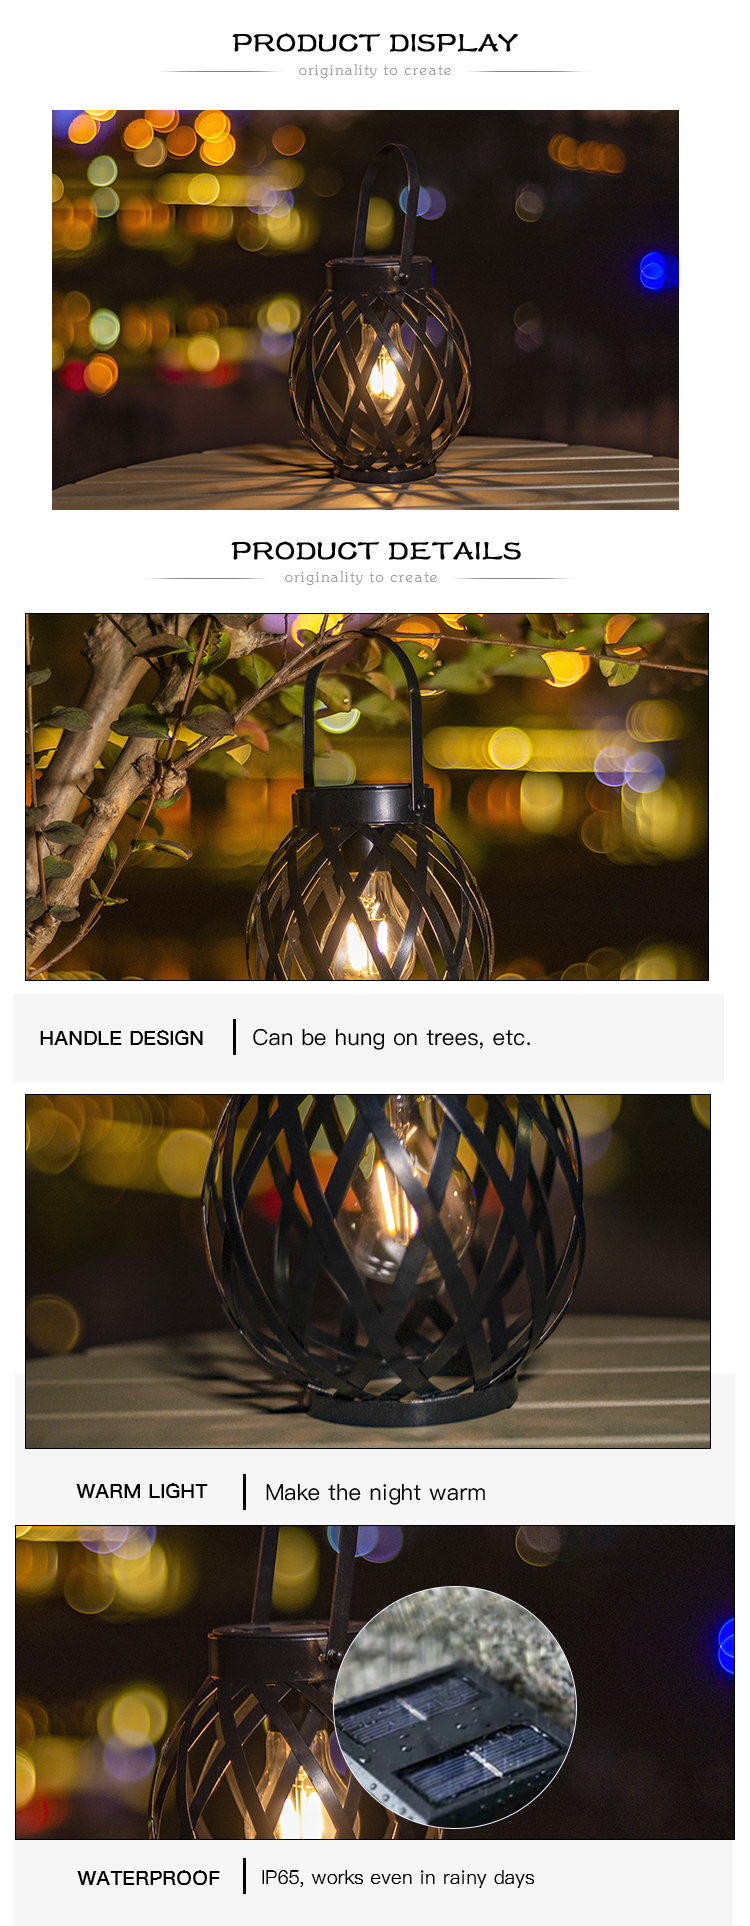 Decorative Hanging Lamp for garden outdoor decor, solar hanging lantern